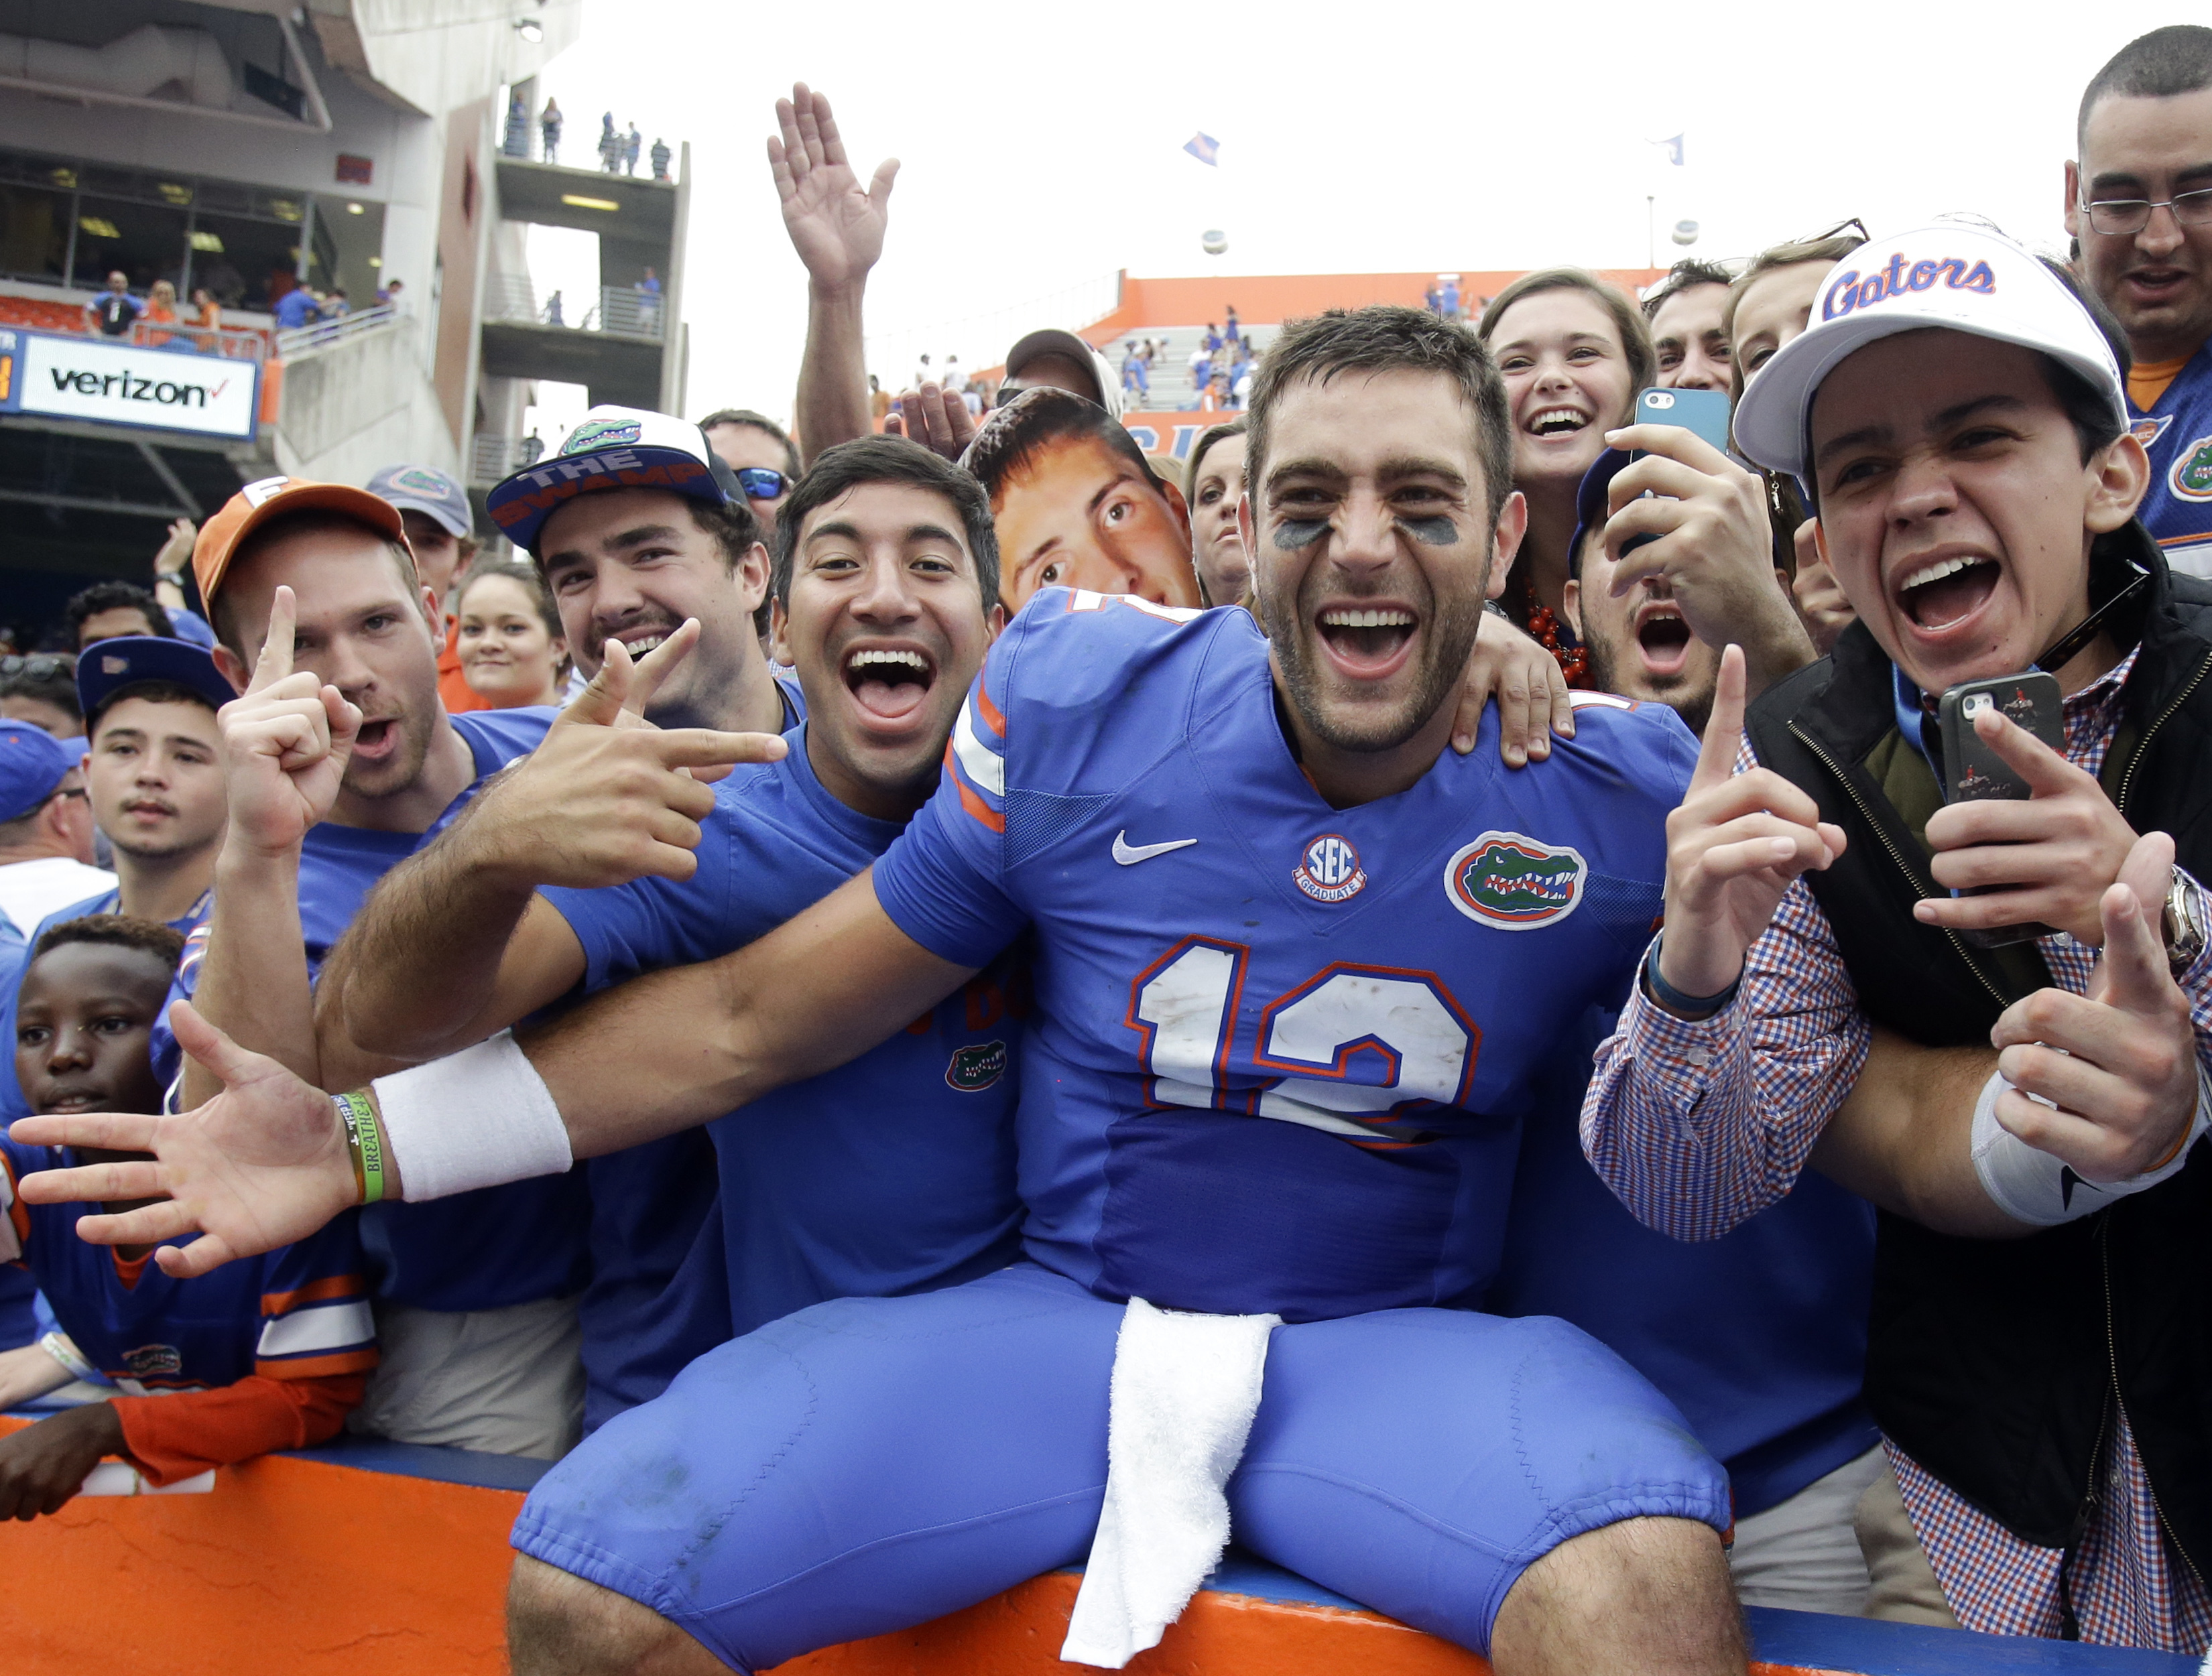 Florida quarterback Austin Appleby (12) celebrates with fans after defeating South Carolina 20-7 in an NCAA college football game, Saturday, Nov. 12, 2016, in Gainesville, Fla. (AP Photo/John Raoux)